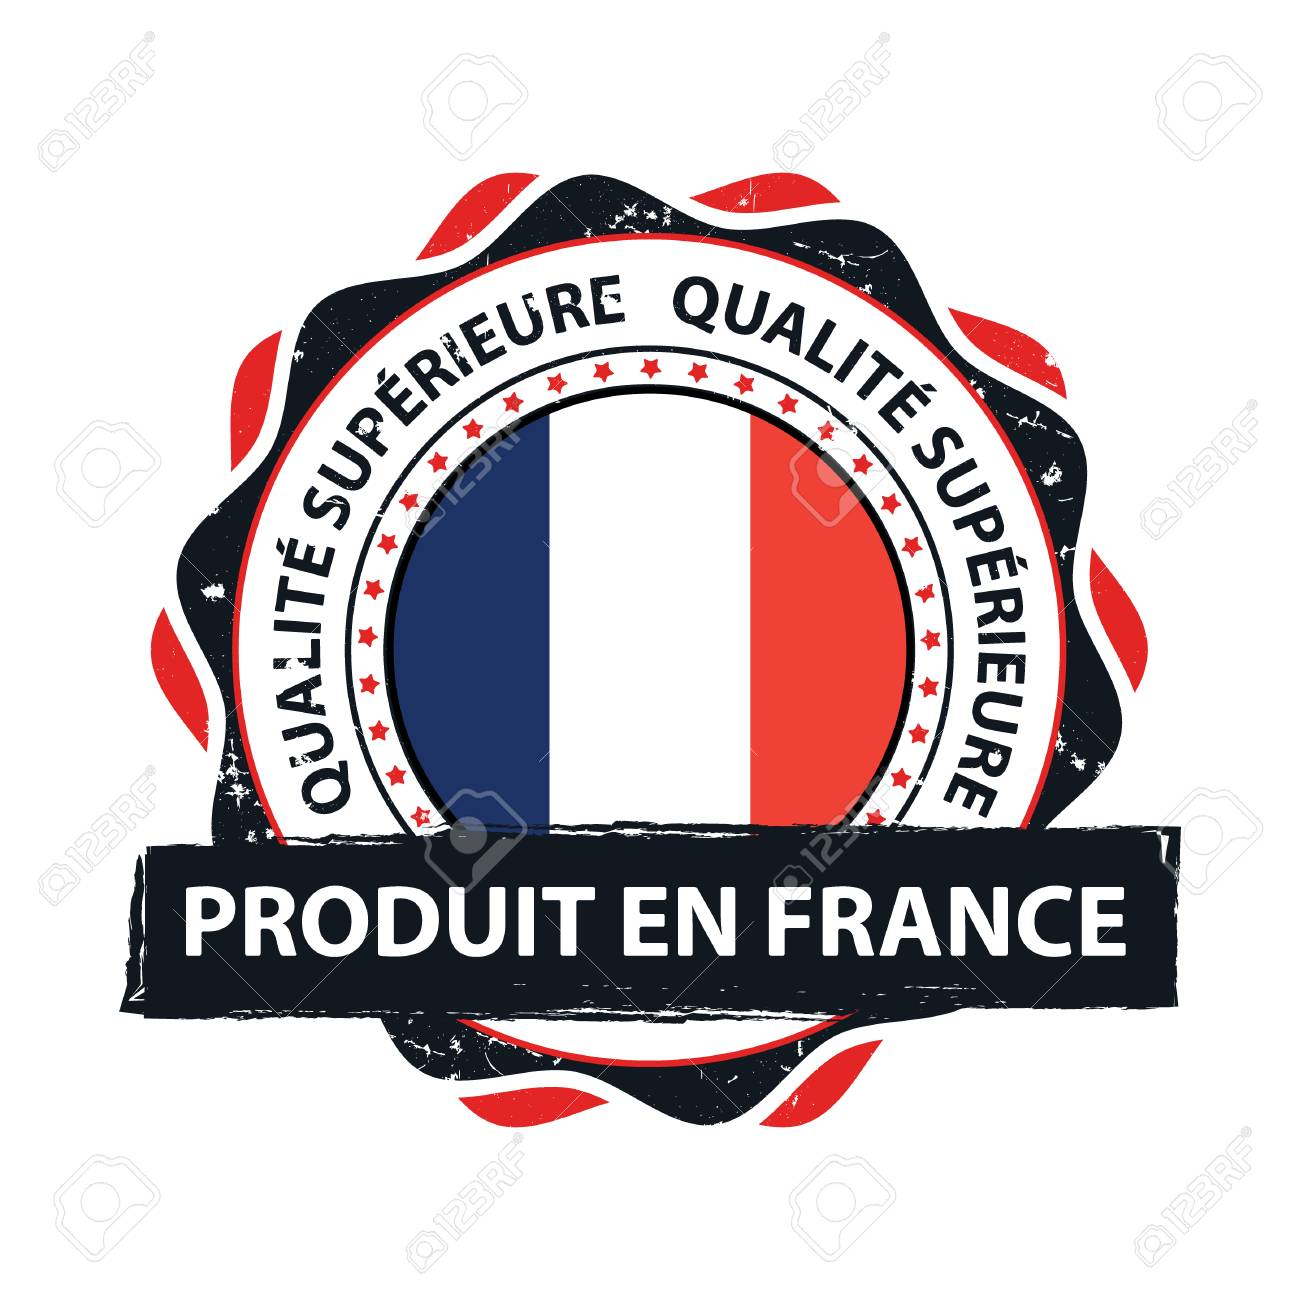 Map Of France In French Language.Made In France Premium Quality French And English Language